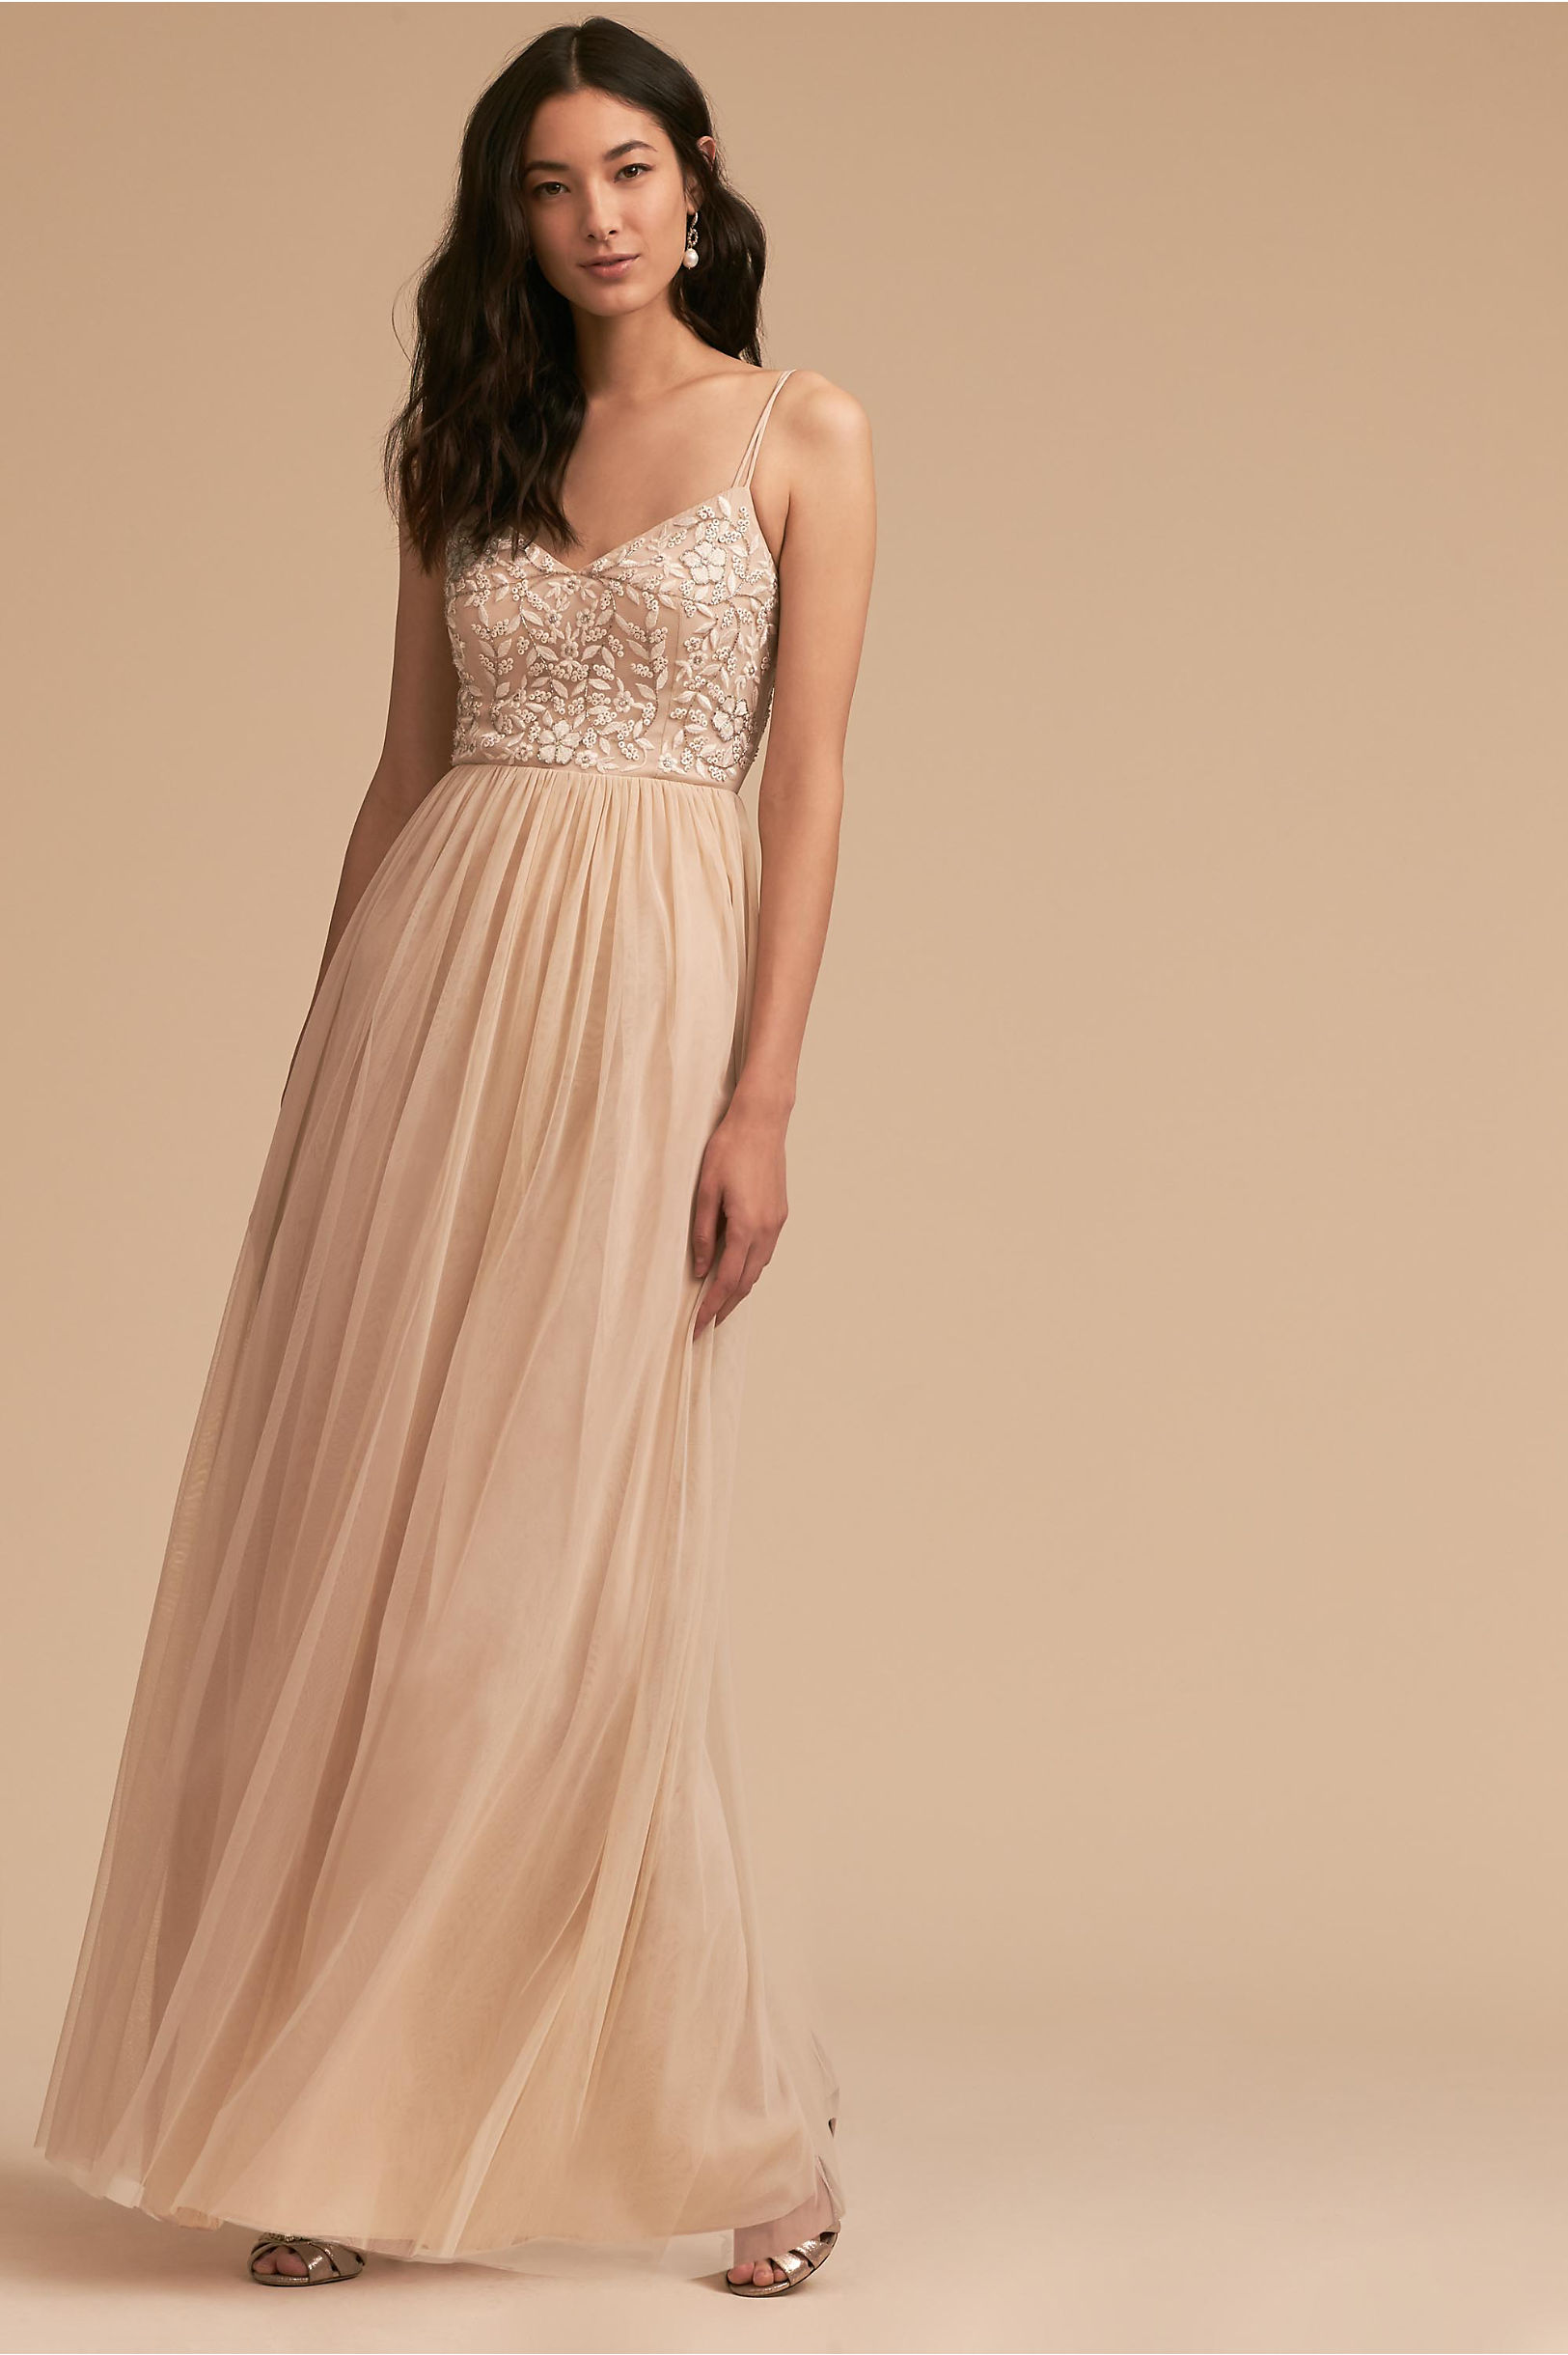 Elowen Dress Oyster in Occasion Dresses | BHLDN